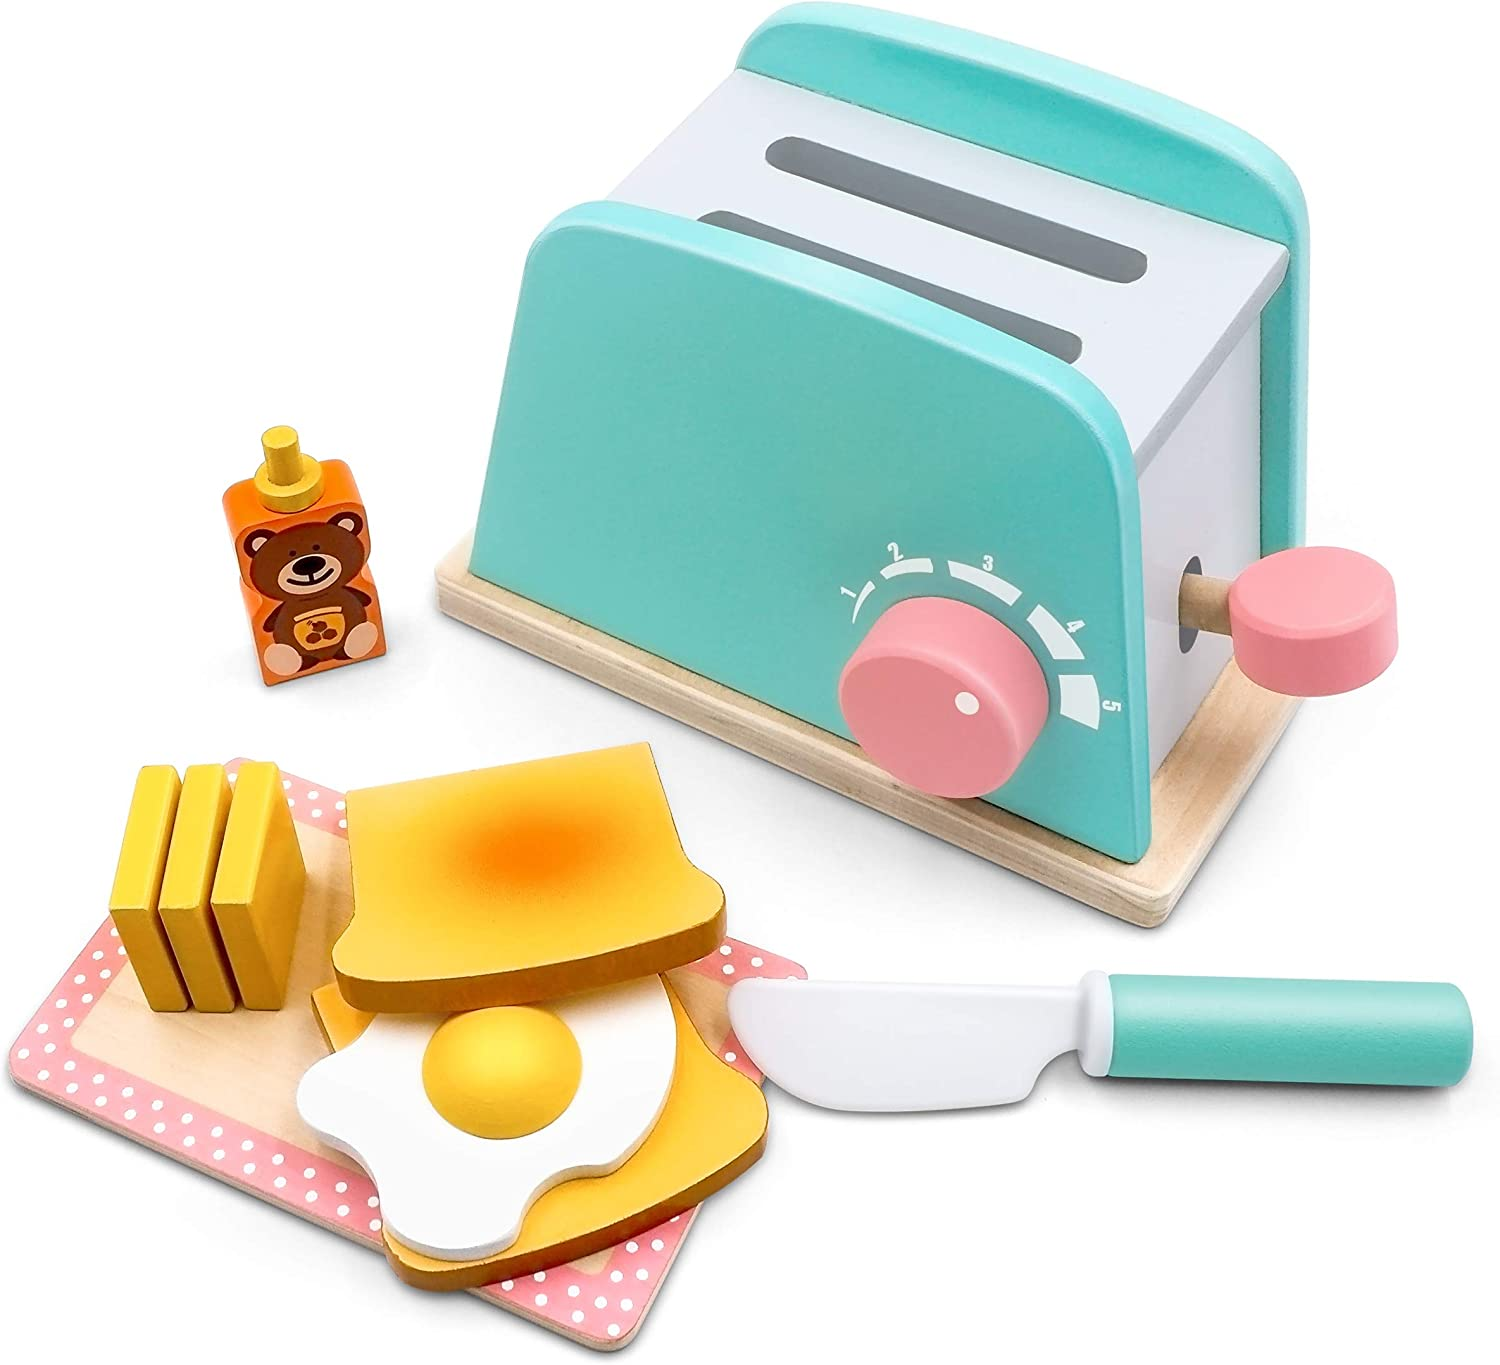 Toy Kitchen Wooden Pop-Up Toaster Play Set 10 Pcs, Interactive Early Learning Toaster, Exclusive Chopping Board, Knife, Poached Egg Honey Bear and Sliceable Butter, Fun and Colorful for Girls and Boys